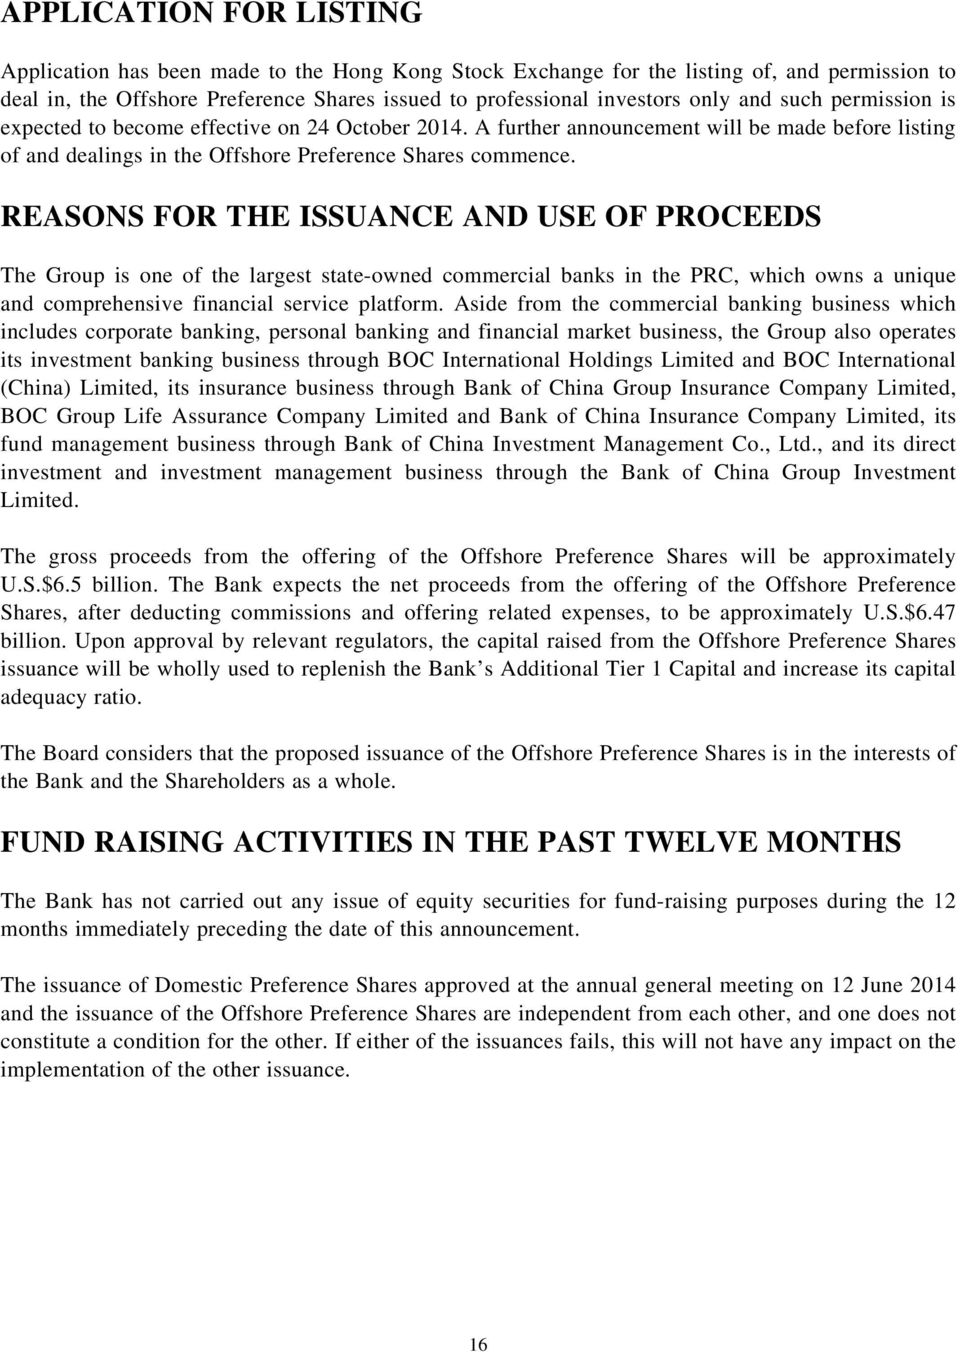 REASONS FOR THE ISSUANCE AND USE OF PROCEEDS The Group is one of the largest state-owned commercial banks in the PRC, which owns a unique and comprehensive financial service platform.